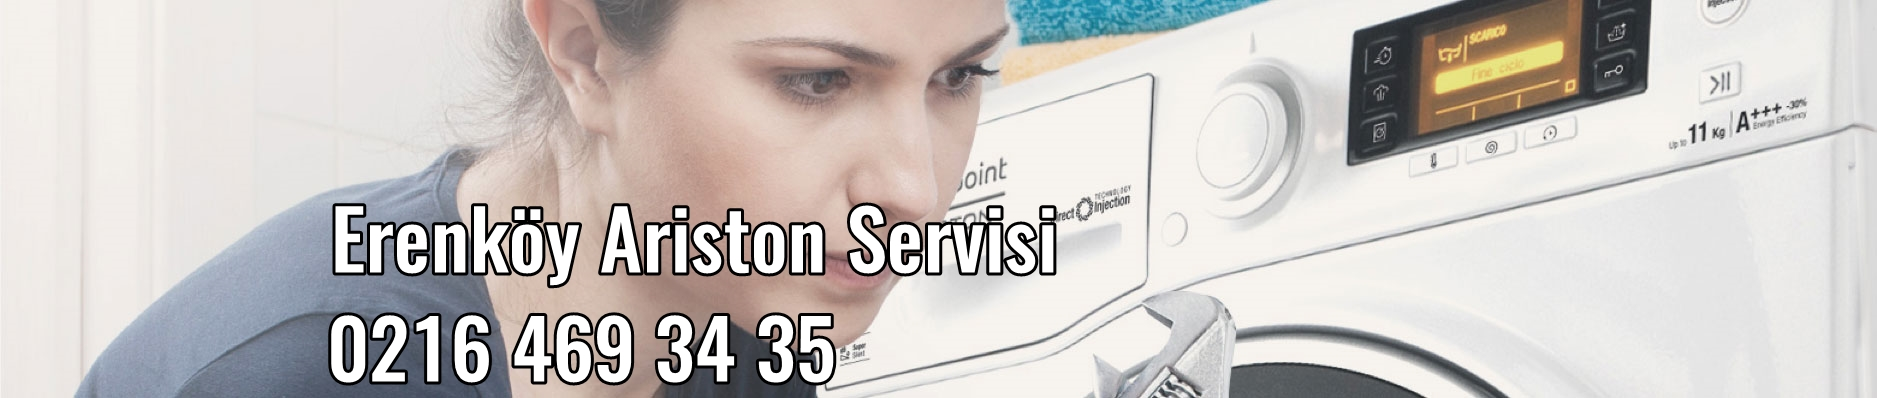 Erenköy Ariston Servisi